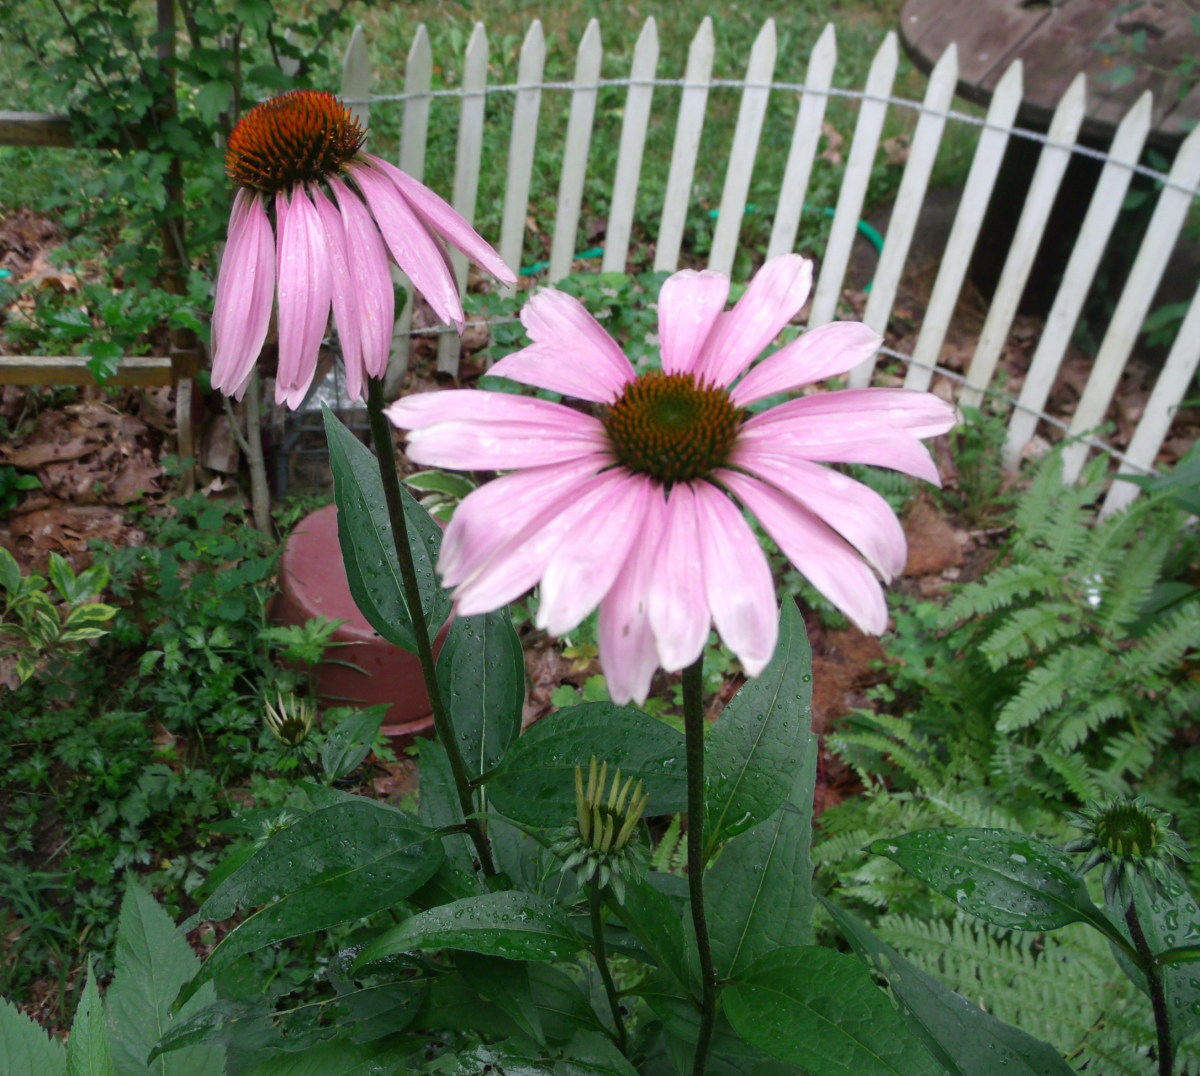 Purple coneflower centers hold lots of potential seeds for my finches to enjoy.